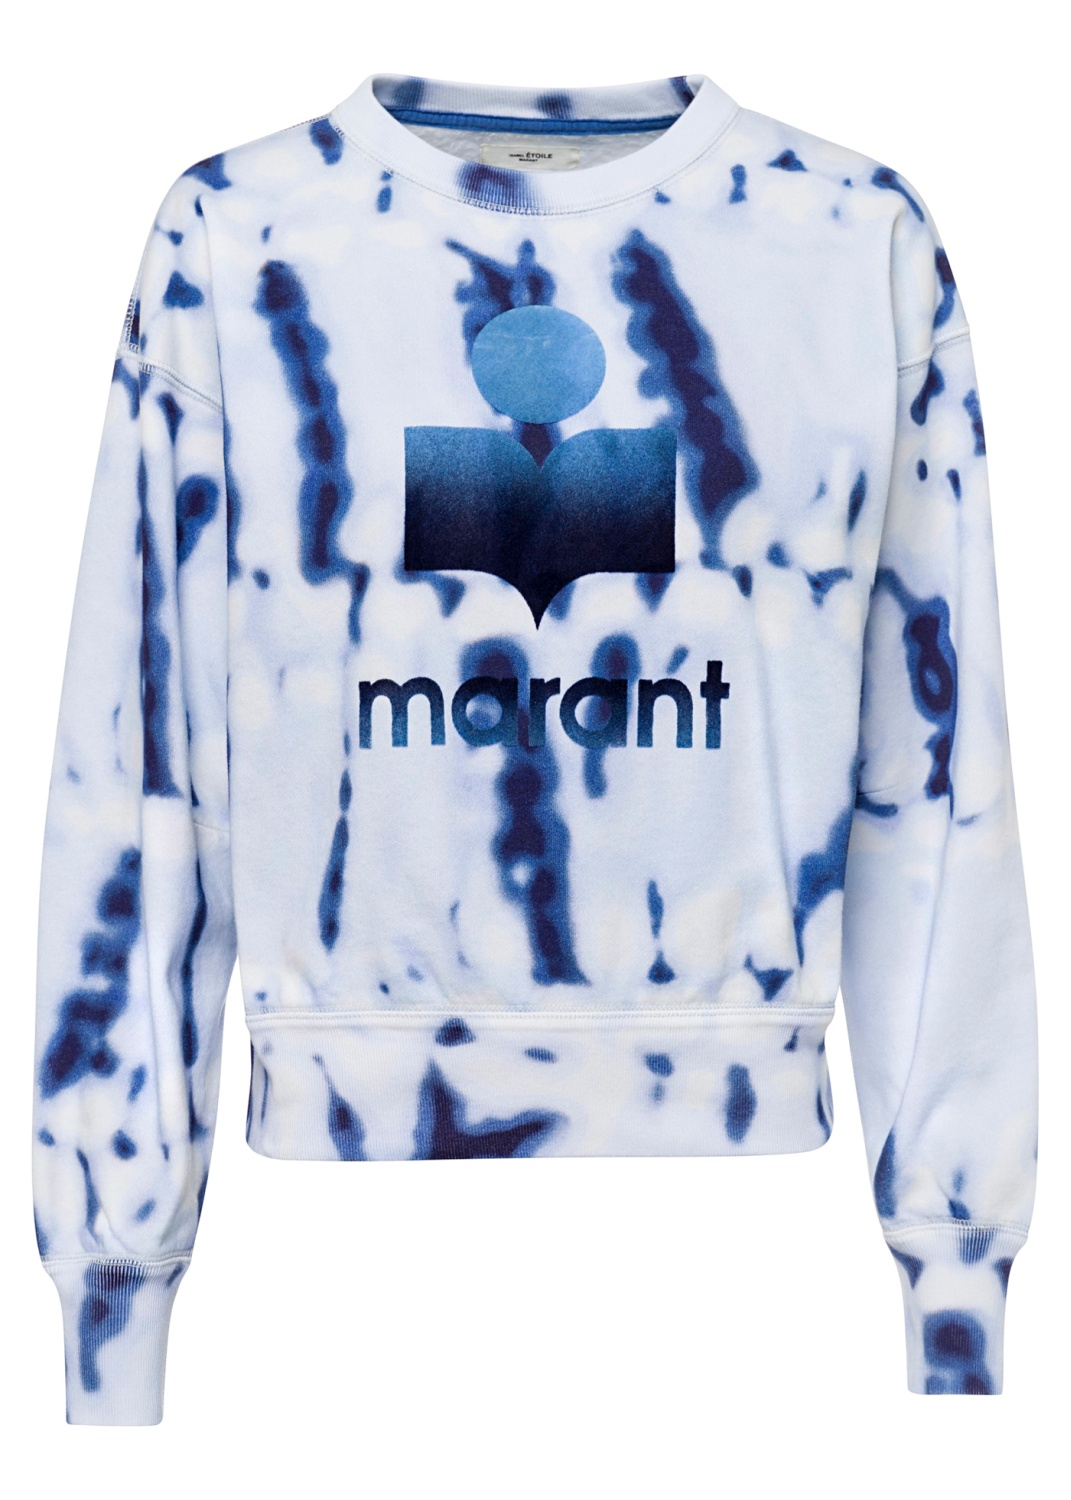 MOBYLI Sweat shirt image number 0